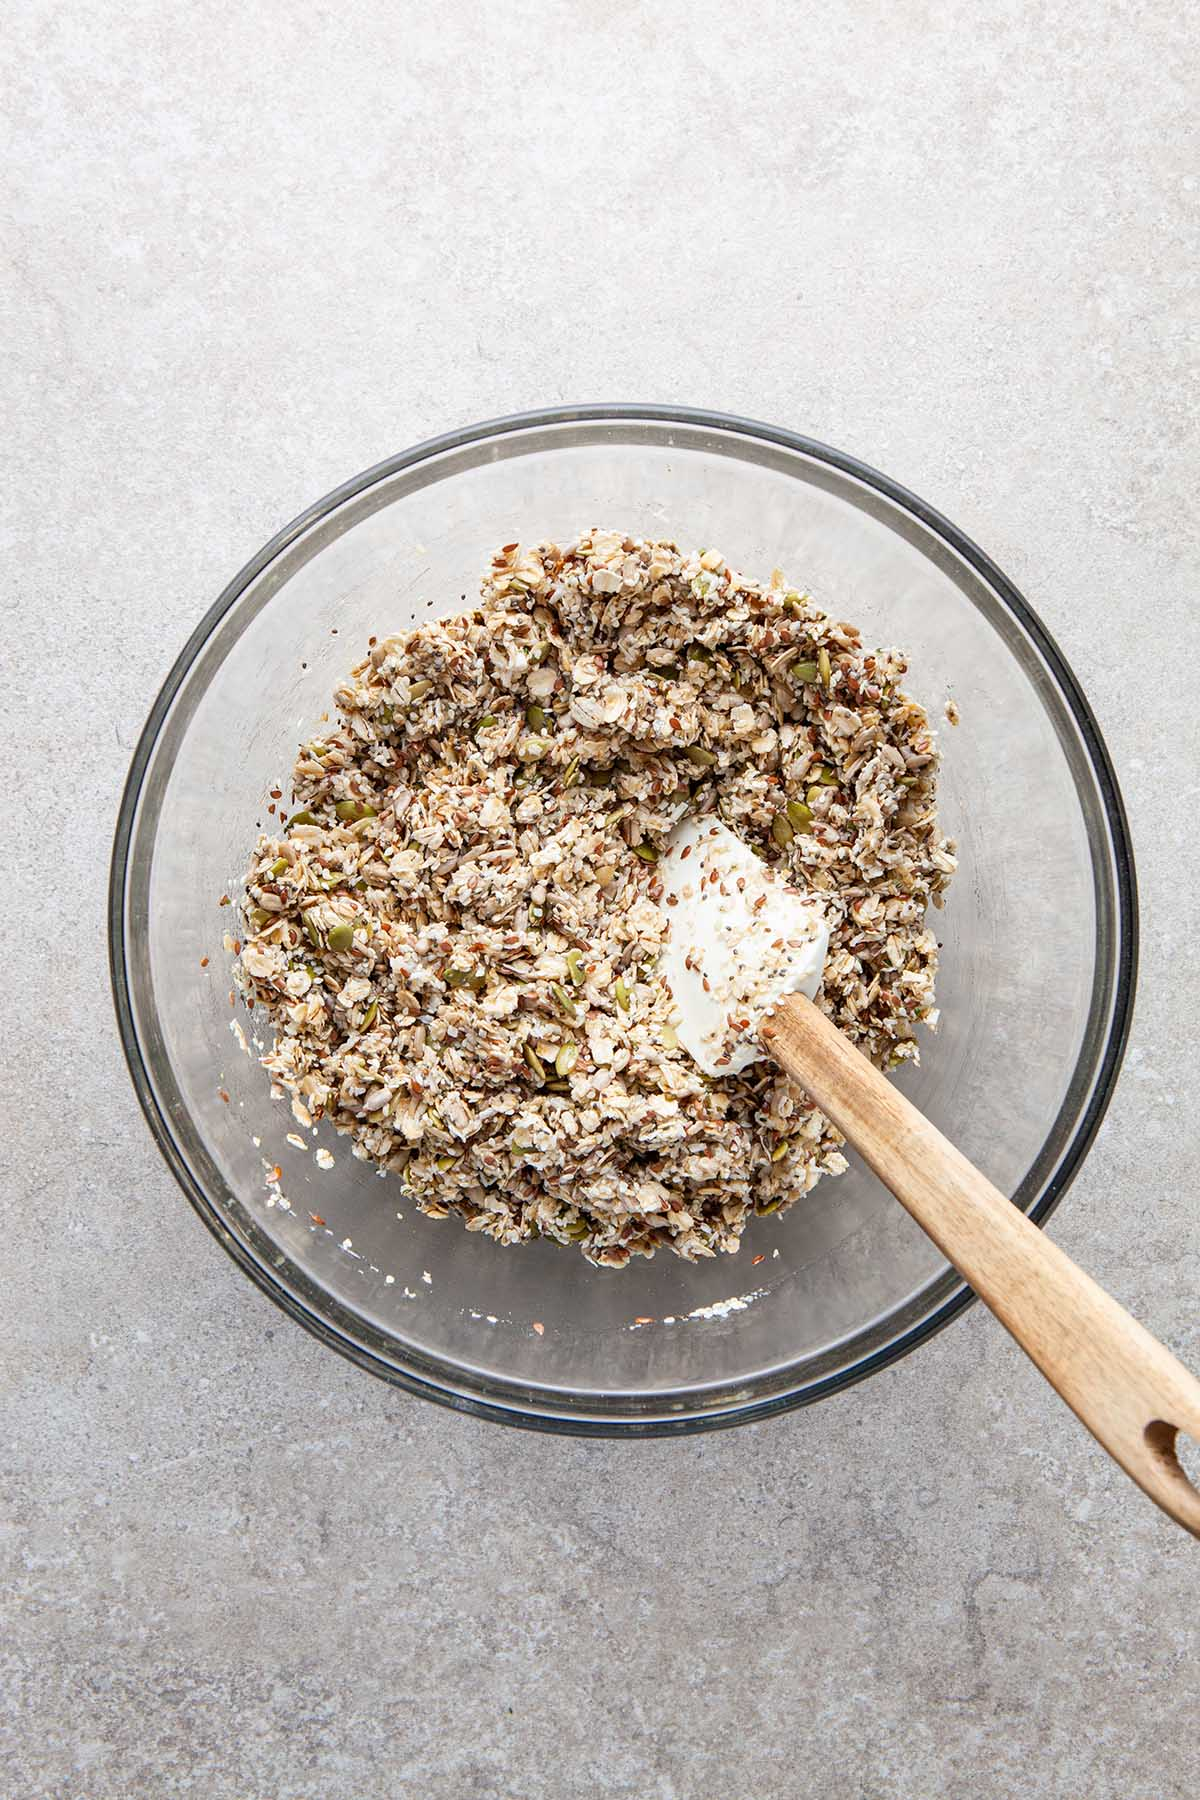 A glass bowl of oats, seeds, coconut, honey, and oil mixed together.